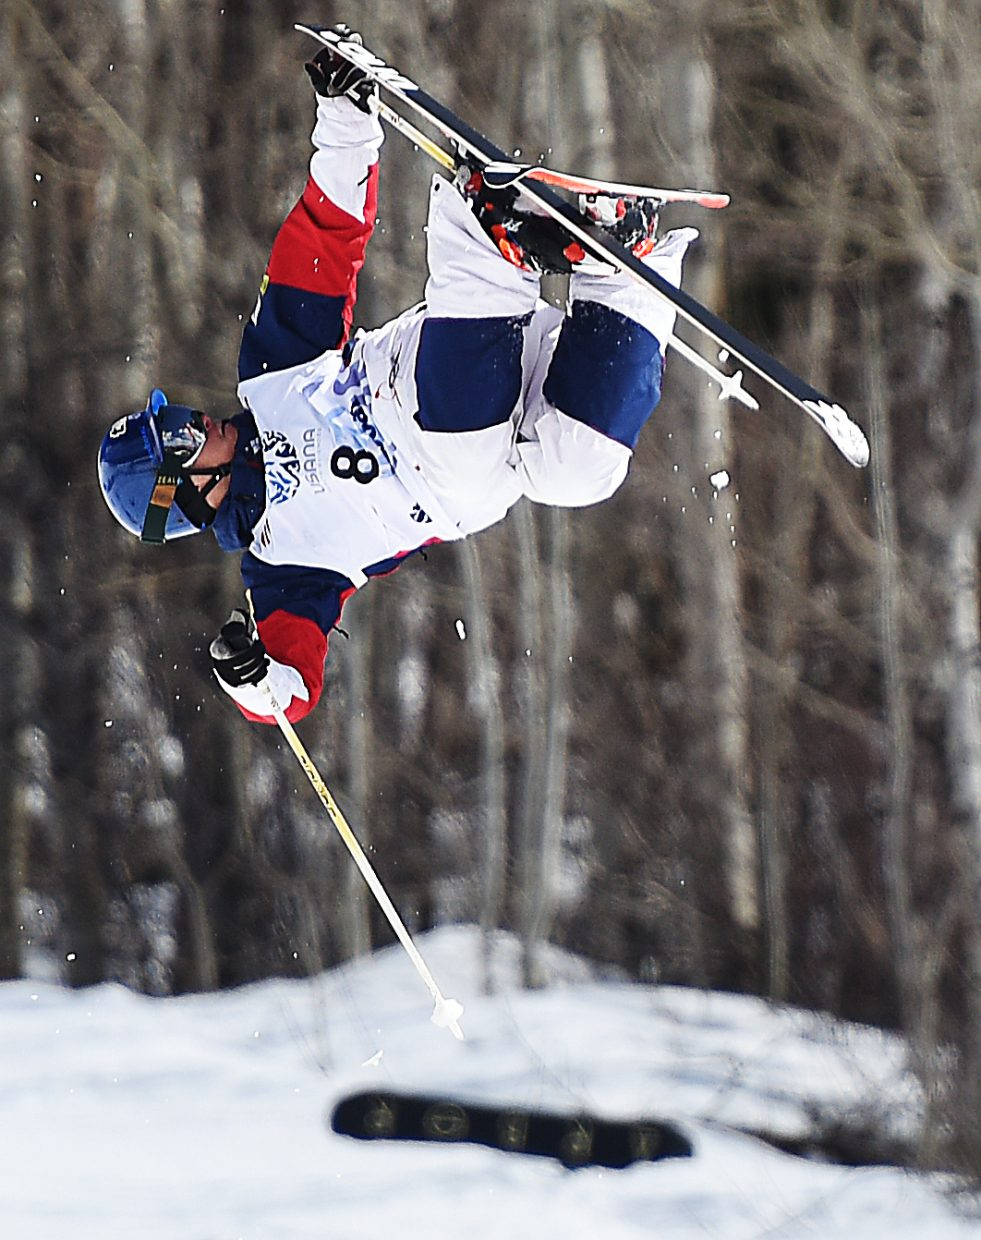 Joe Discoe spins through a trick Friday at the U.S. Freestyle Nationals in Steamboat Springs. He went on to finish second in the men's moguls competition.